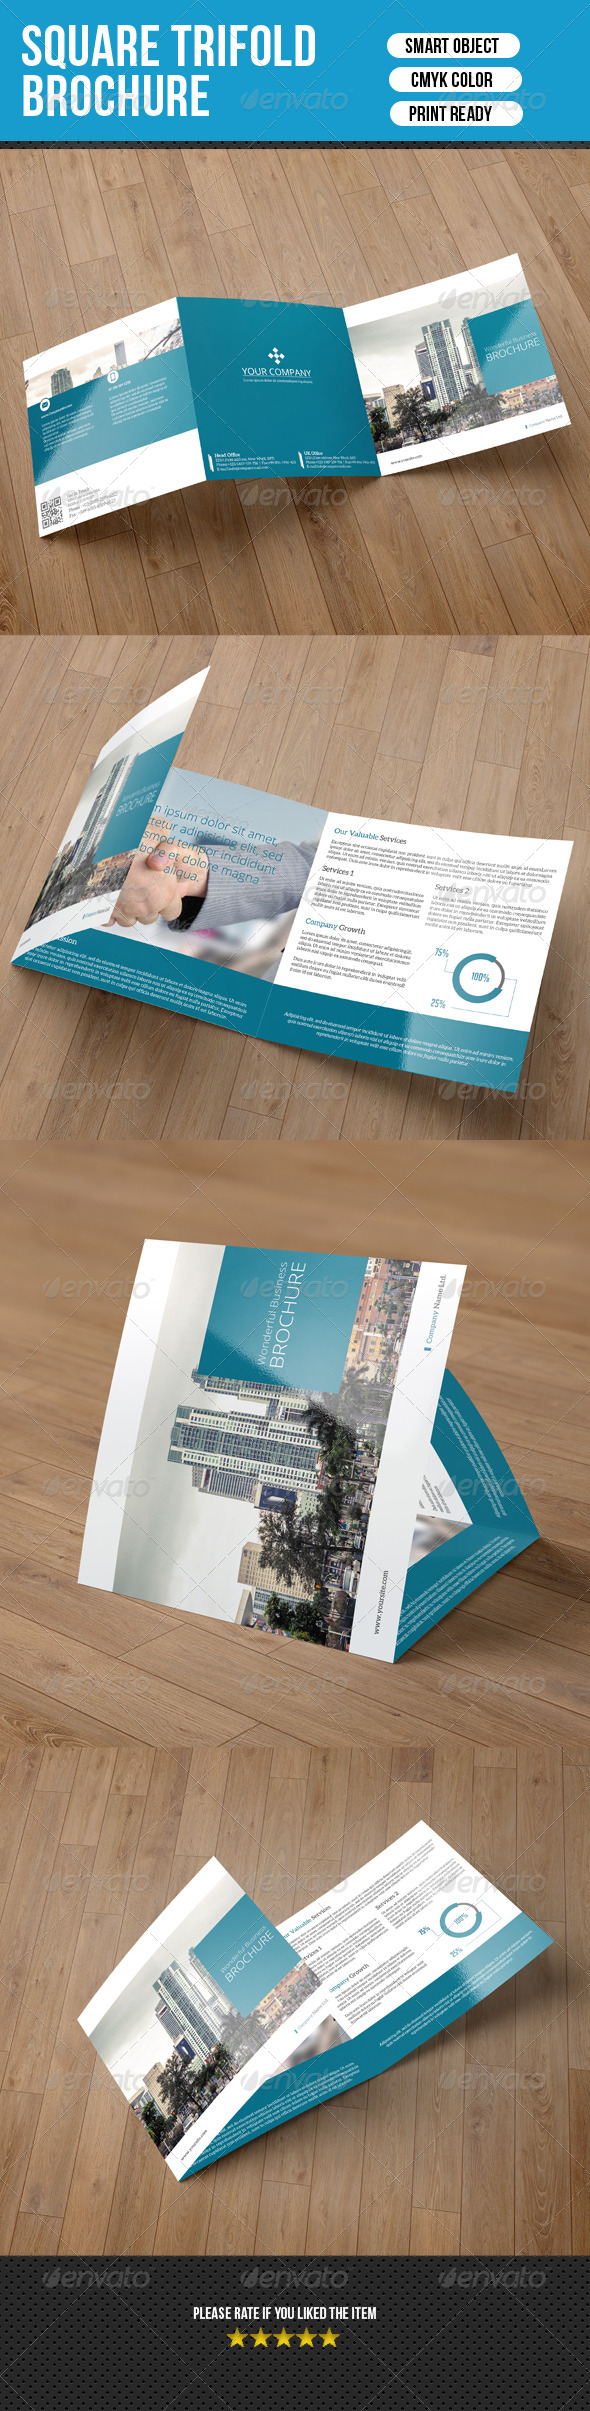 GraphicRiver Square Trifold Brochure-Business 7538822